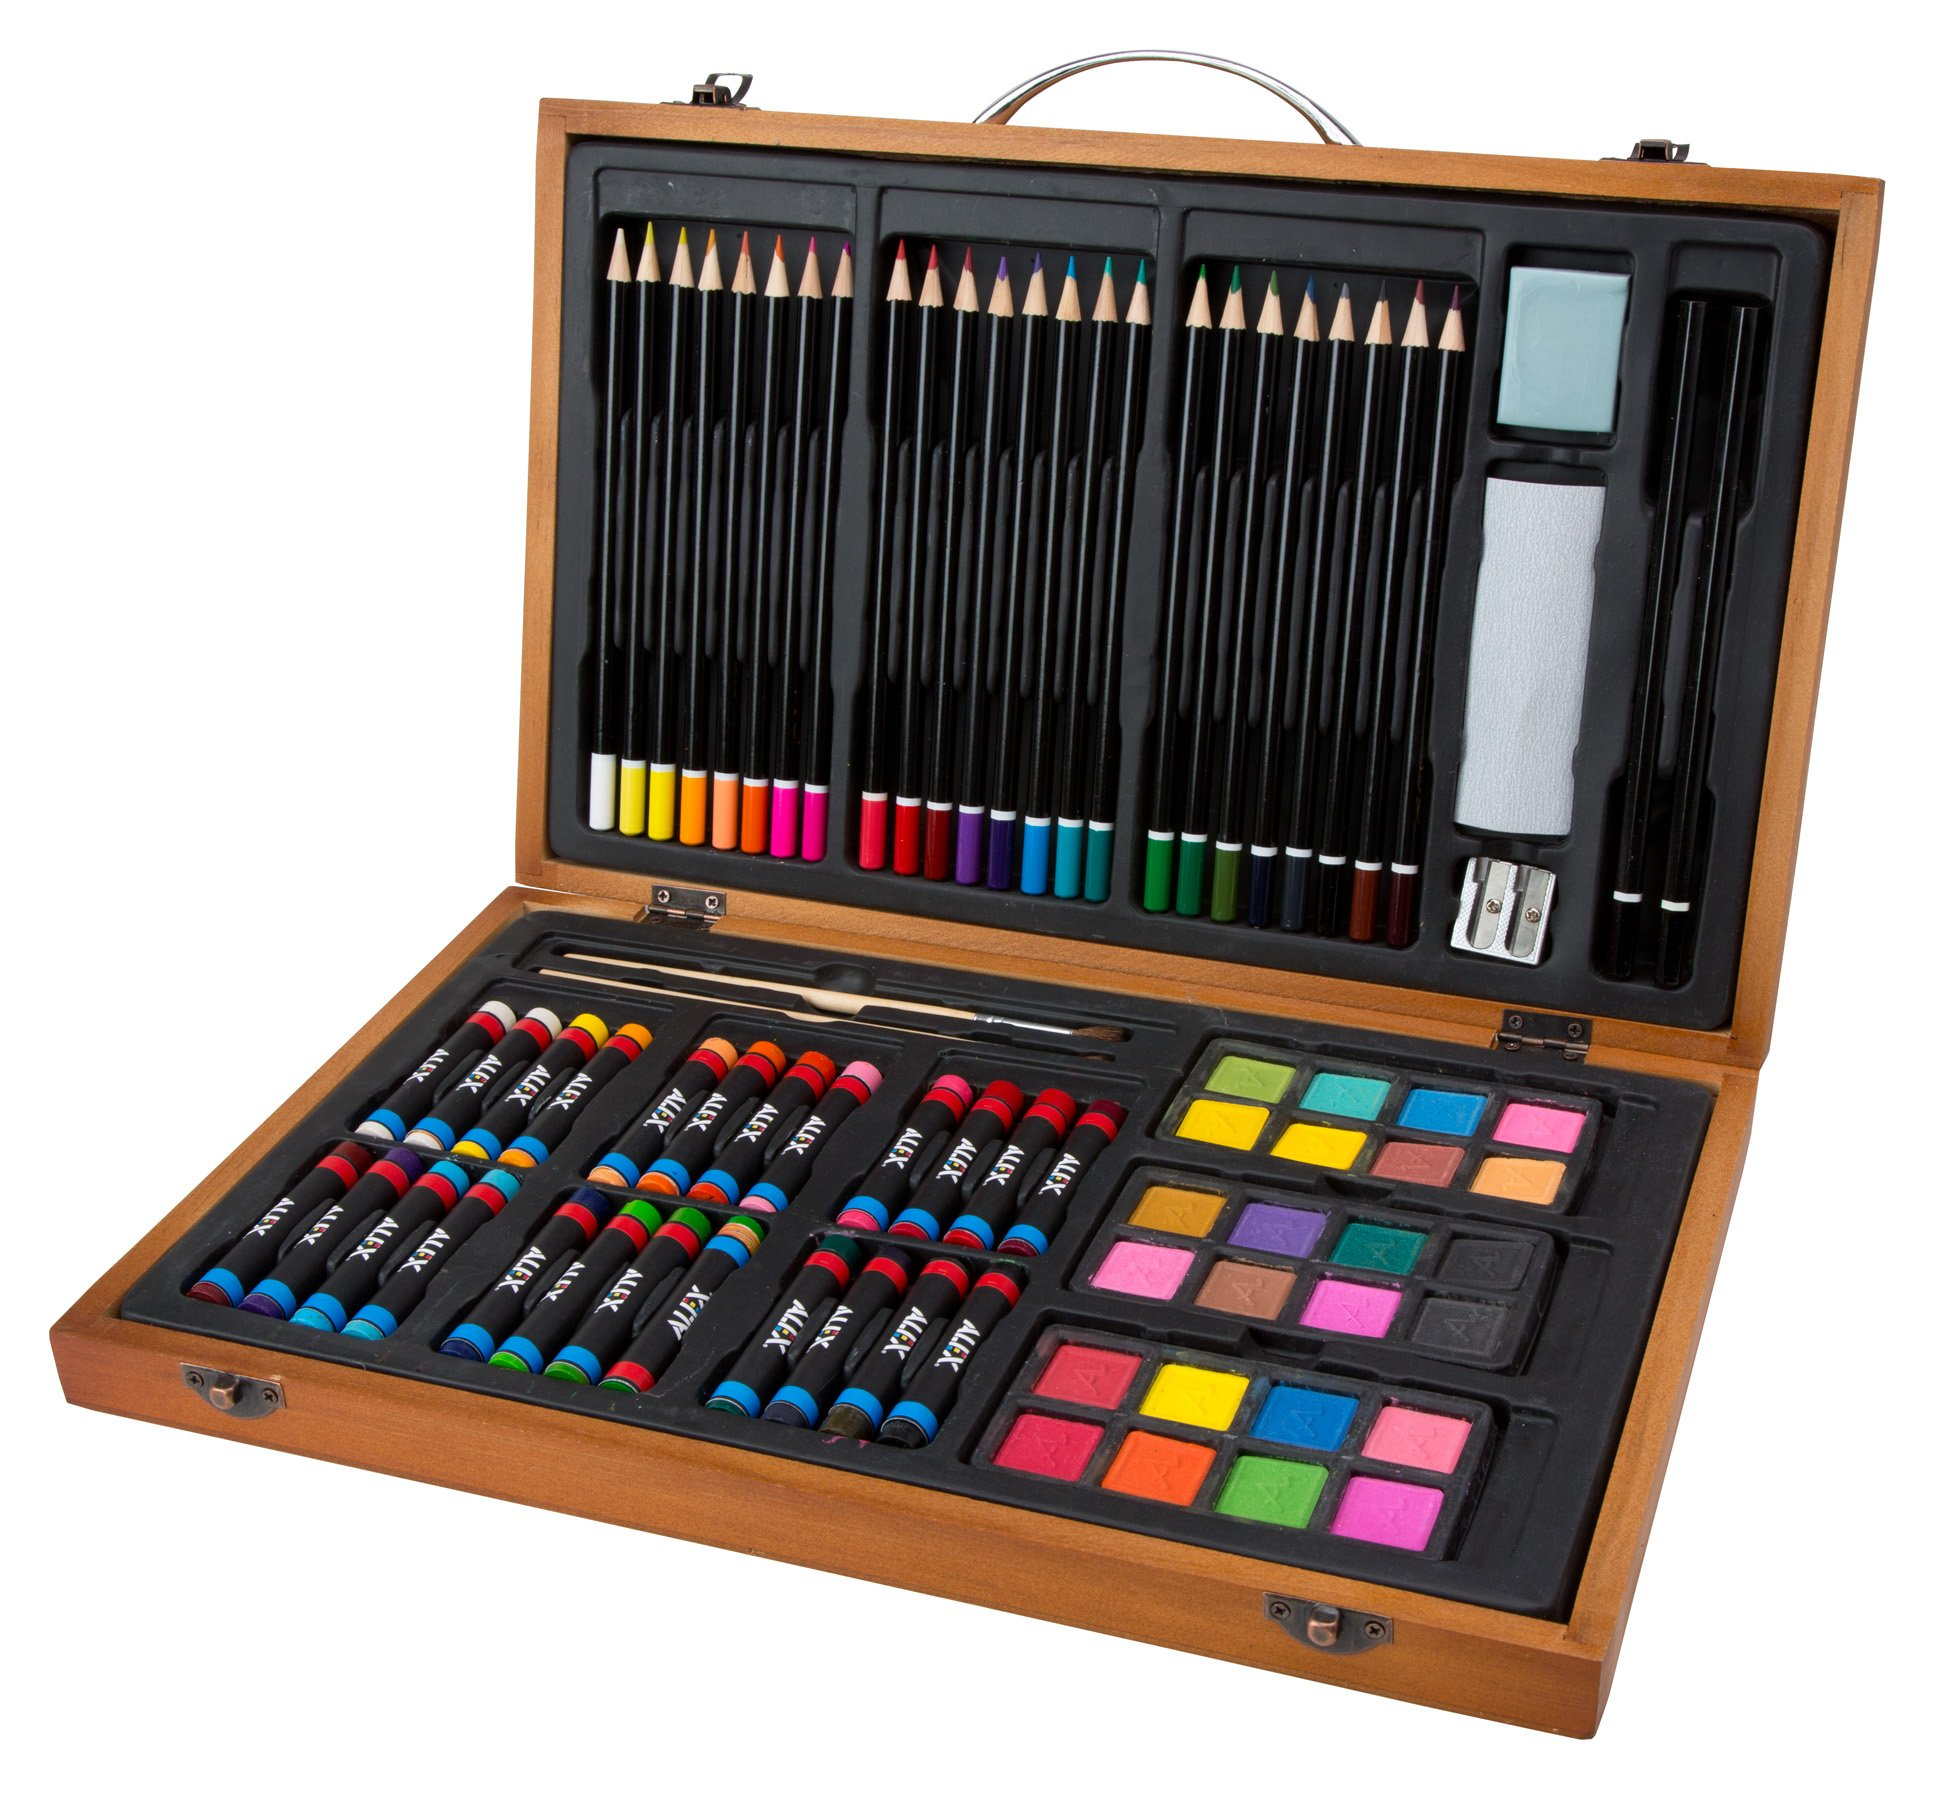 ALEX Toys Artist Studio Portable Essential Art Supplies Set with Wood Carrying Case by ALEX Toys